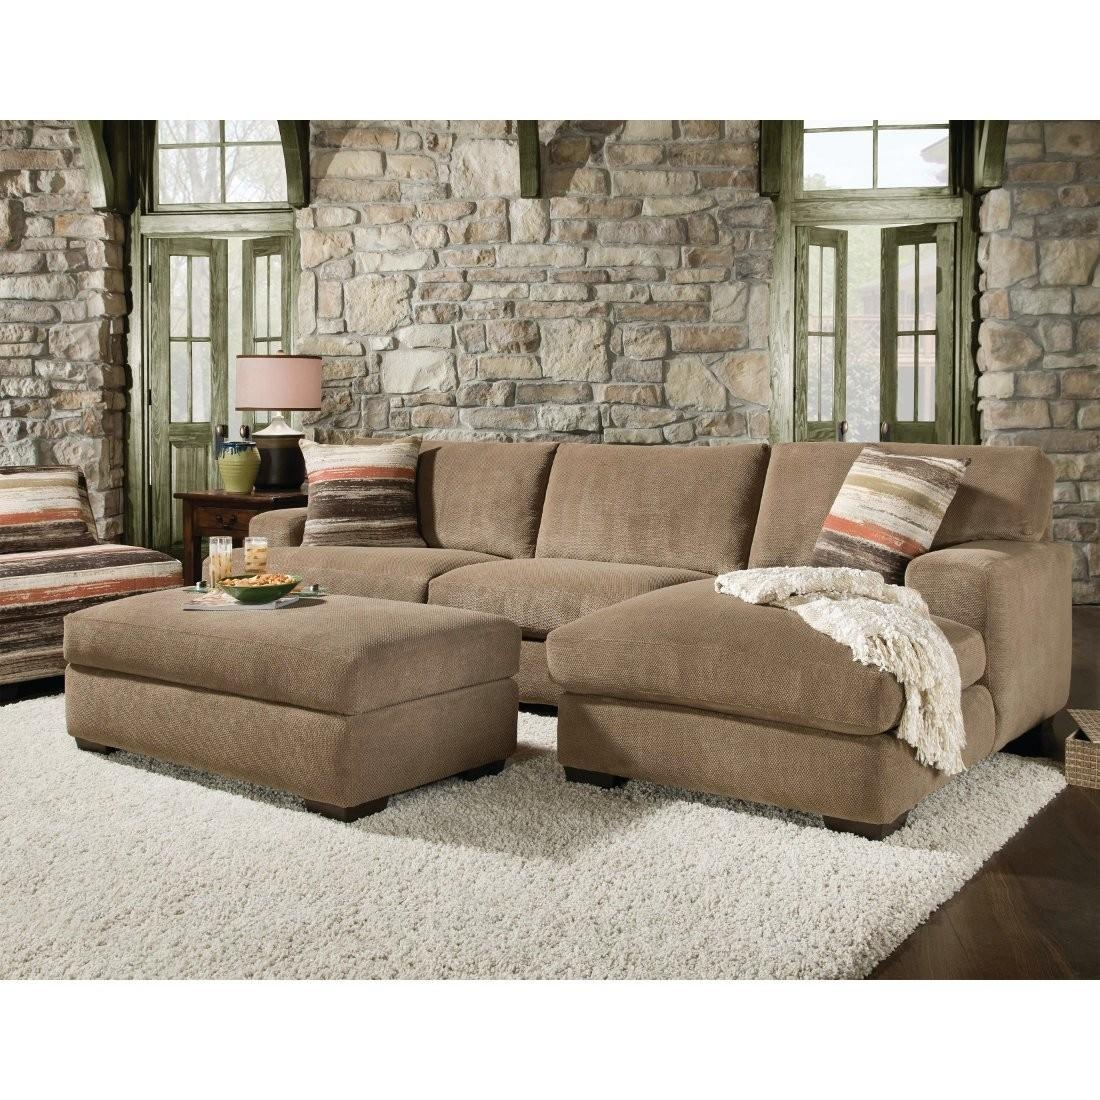 2 Piece Sectional Sofa With Chaise Cover | Tehranmix Decoration With Small 2 Piece Sectional (View 3 of 20)